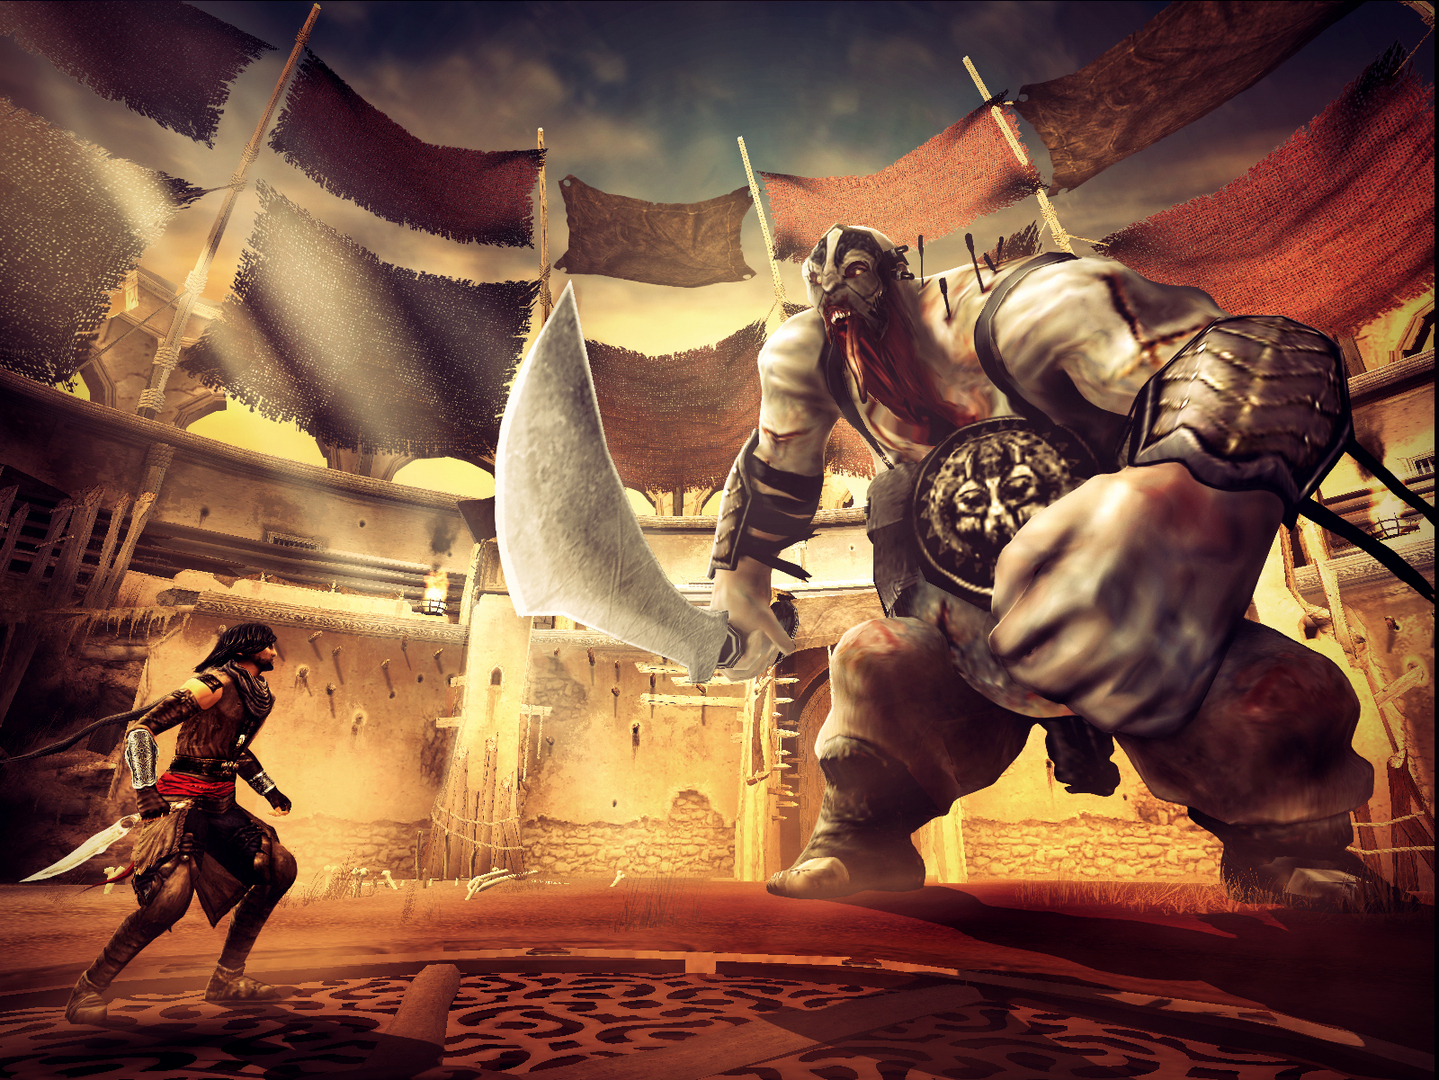 Prince of Persia: The Two Thrones screenshot 1